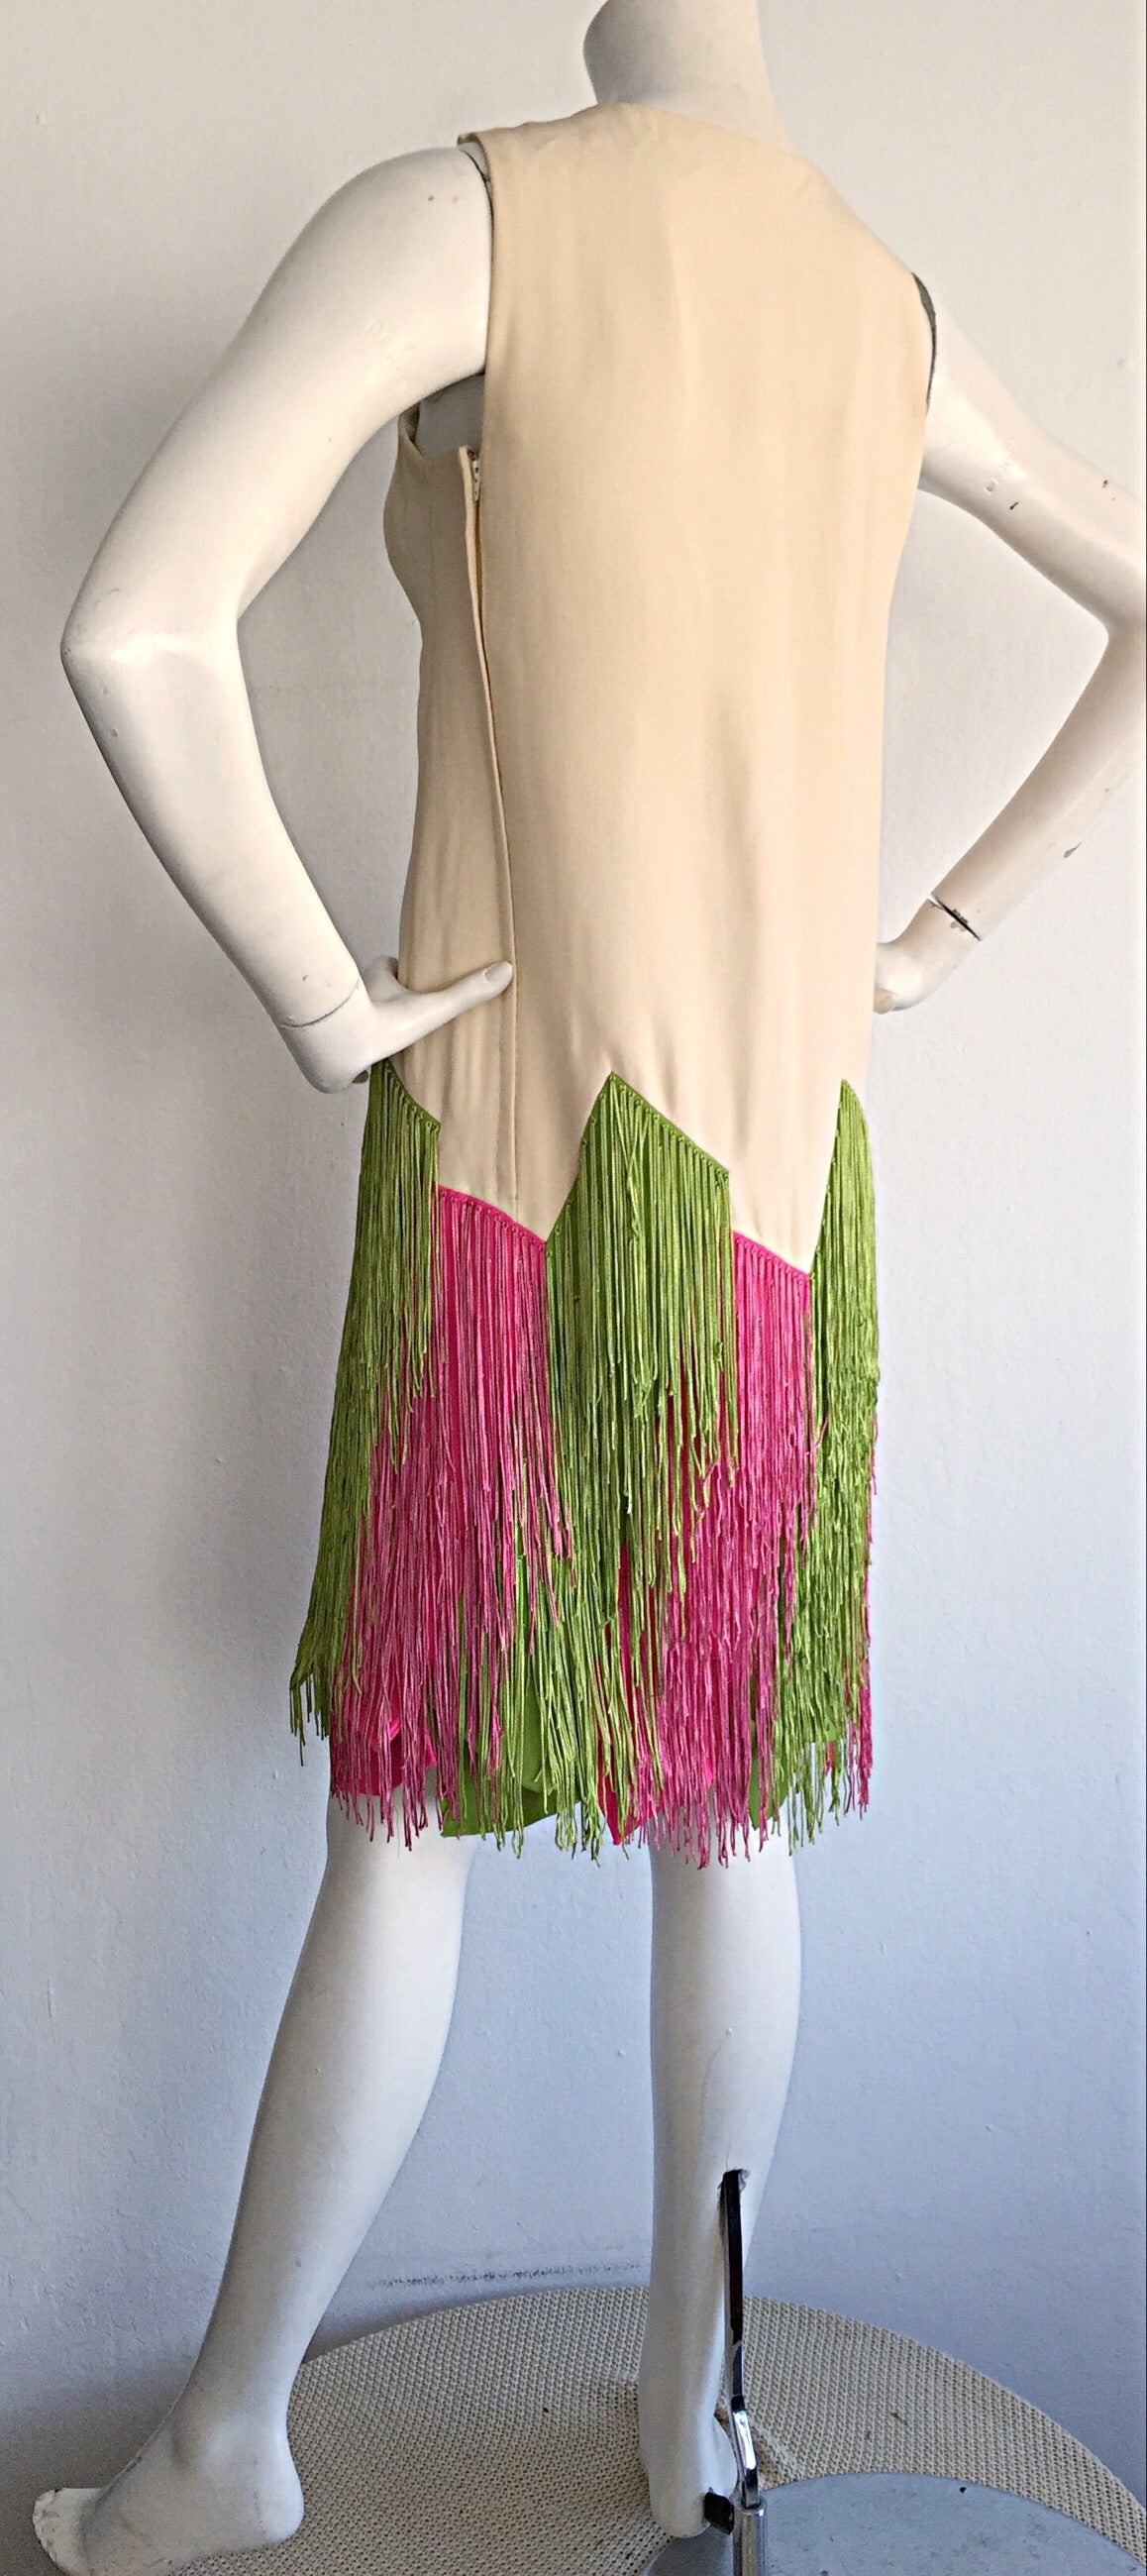 Ultra Rare Jean Louis 1960s 60s Fringe Car Wash Dress For Sale 2